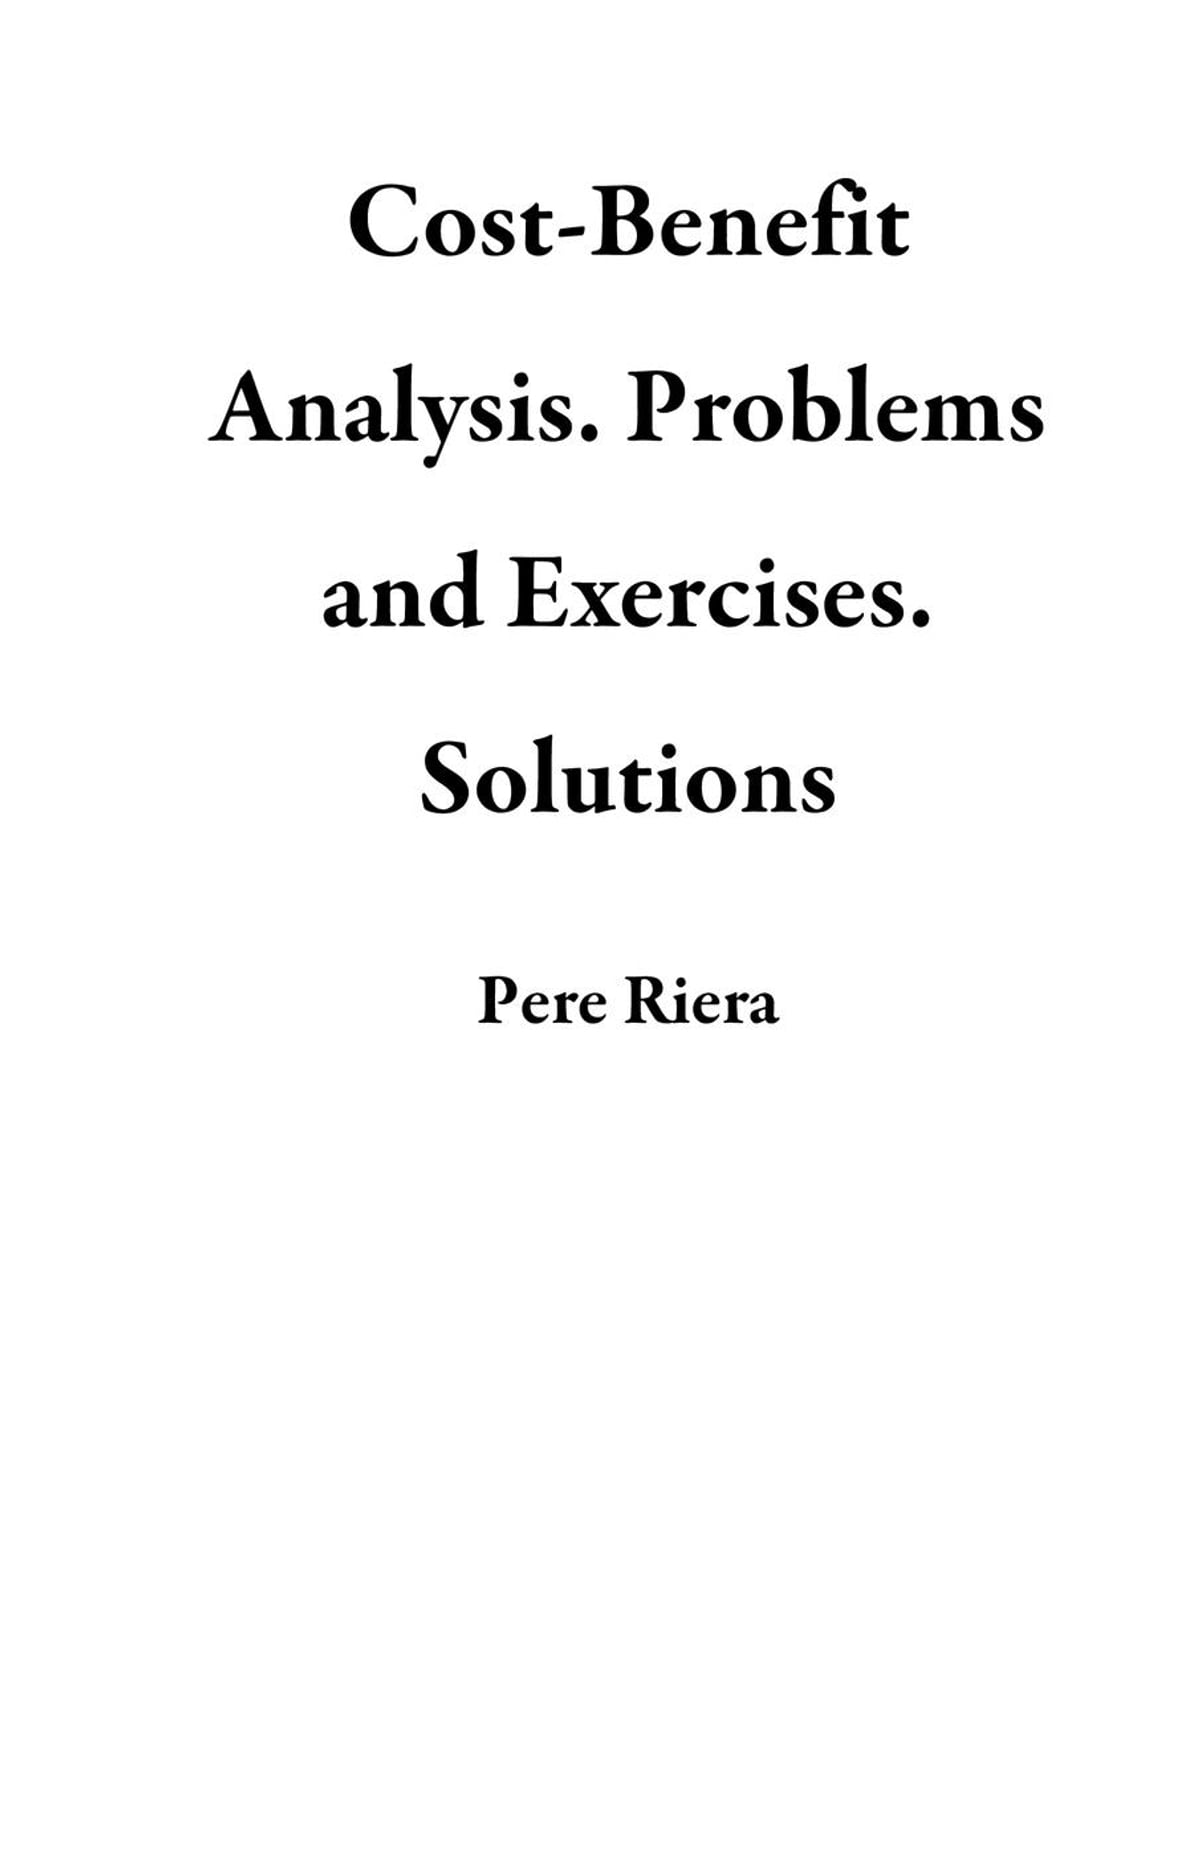 Cost-Benefit Analysis. Problems and Exercises. Solutions